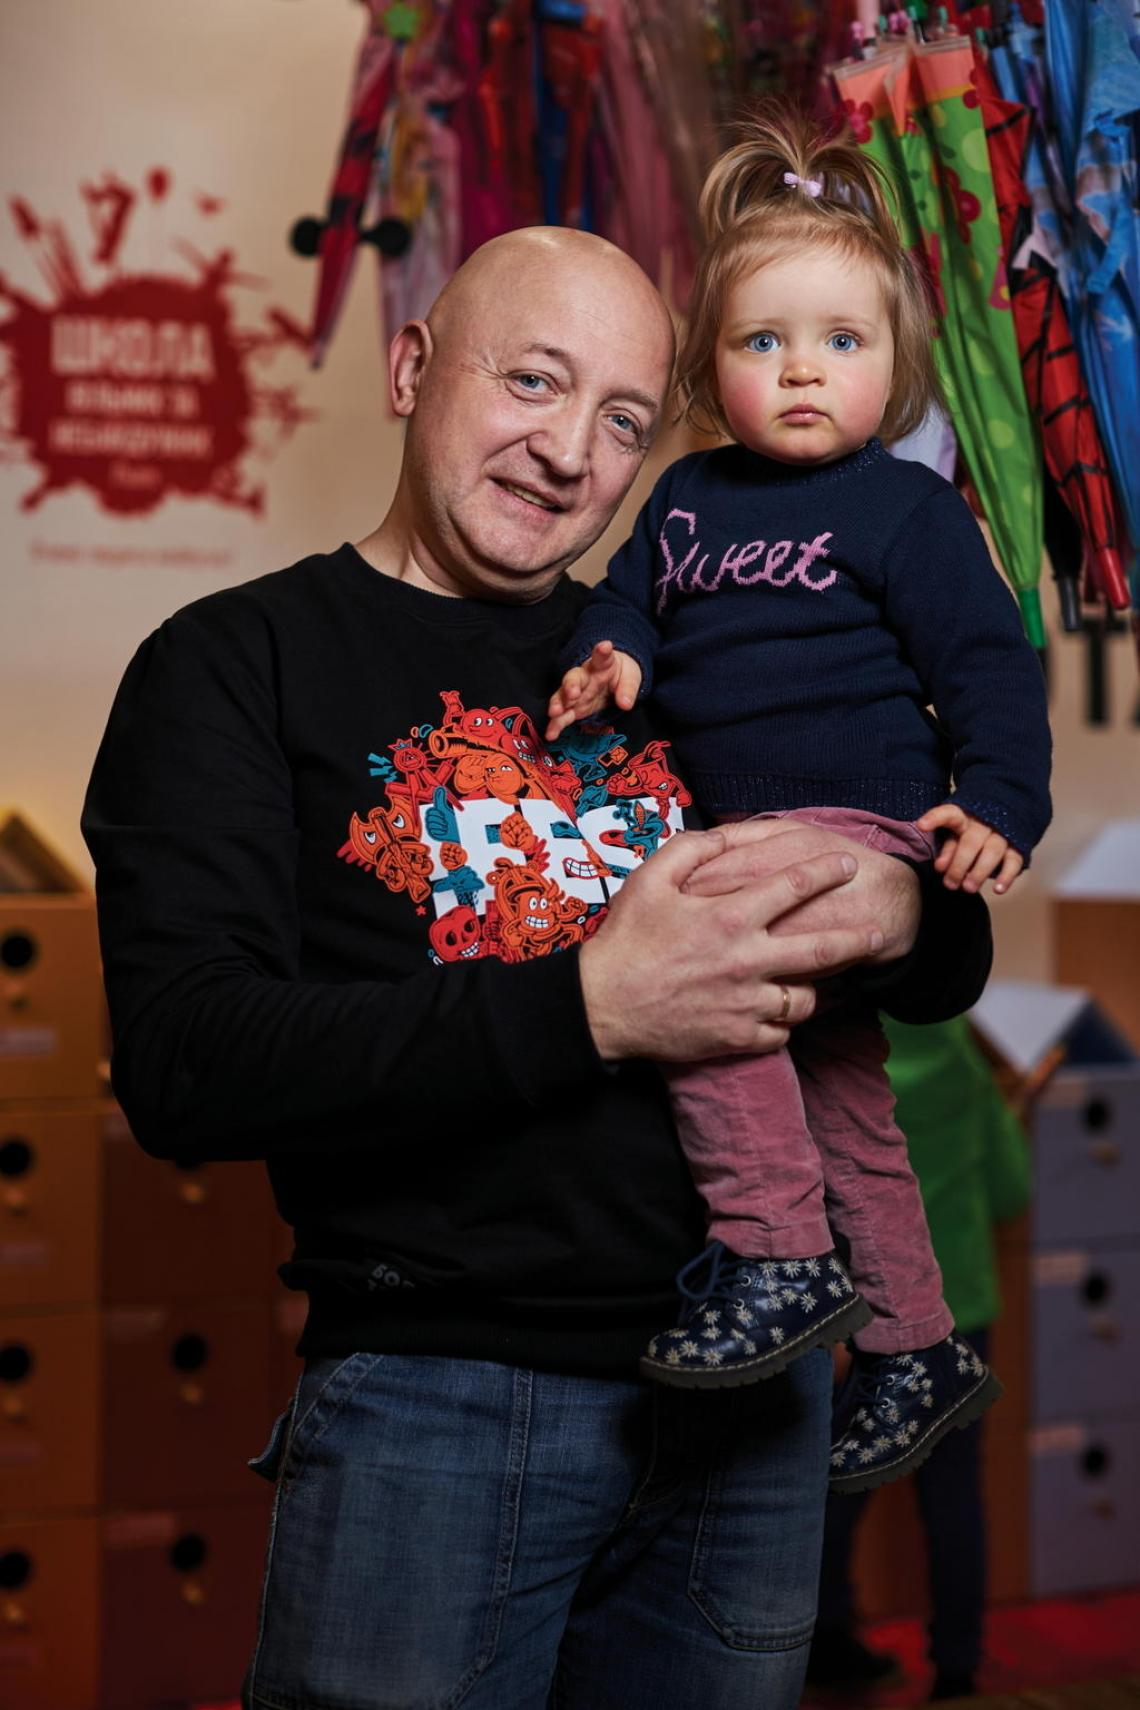 "Oles Pohranychnyi, a private school director in Lviv, once believed the misconceptions surrounding vaccines – he and his wife decided not to vaccinate their three daughters. Increased risk of measles and other illnesses in Ukraine, such as tetanus and diphtheria, made them change their minds. ""The National Education System should... give people confidence in vaccination and health services in general,"" Oles says, holding his daughter. He now organizes UNICEF-supported vaccination training for parents and arranges inoculations for staff."